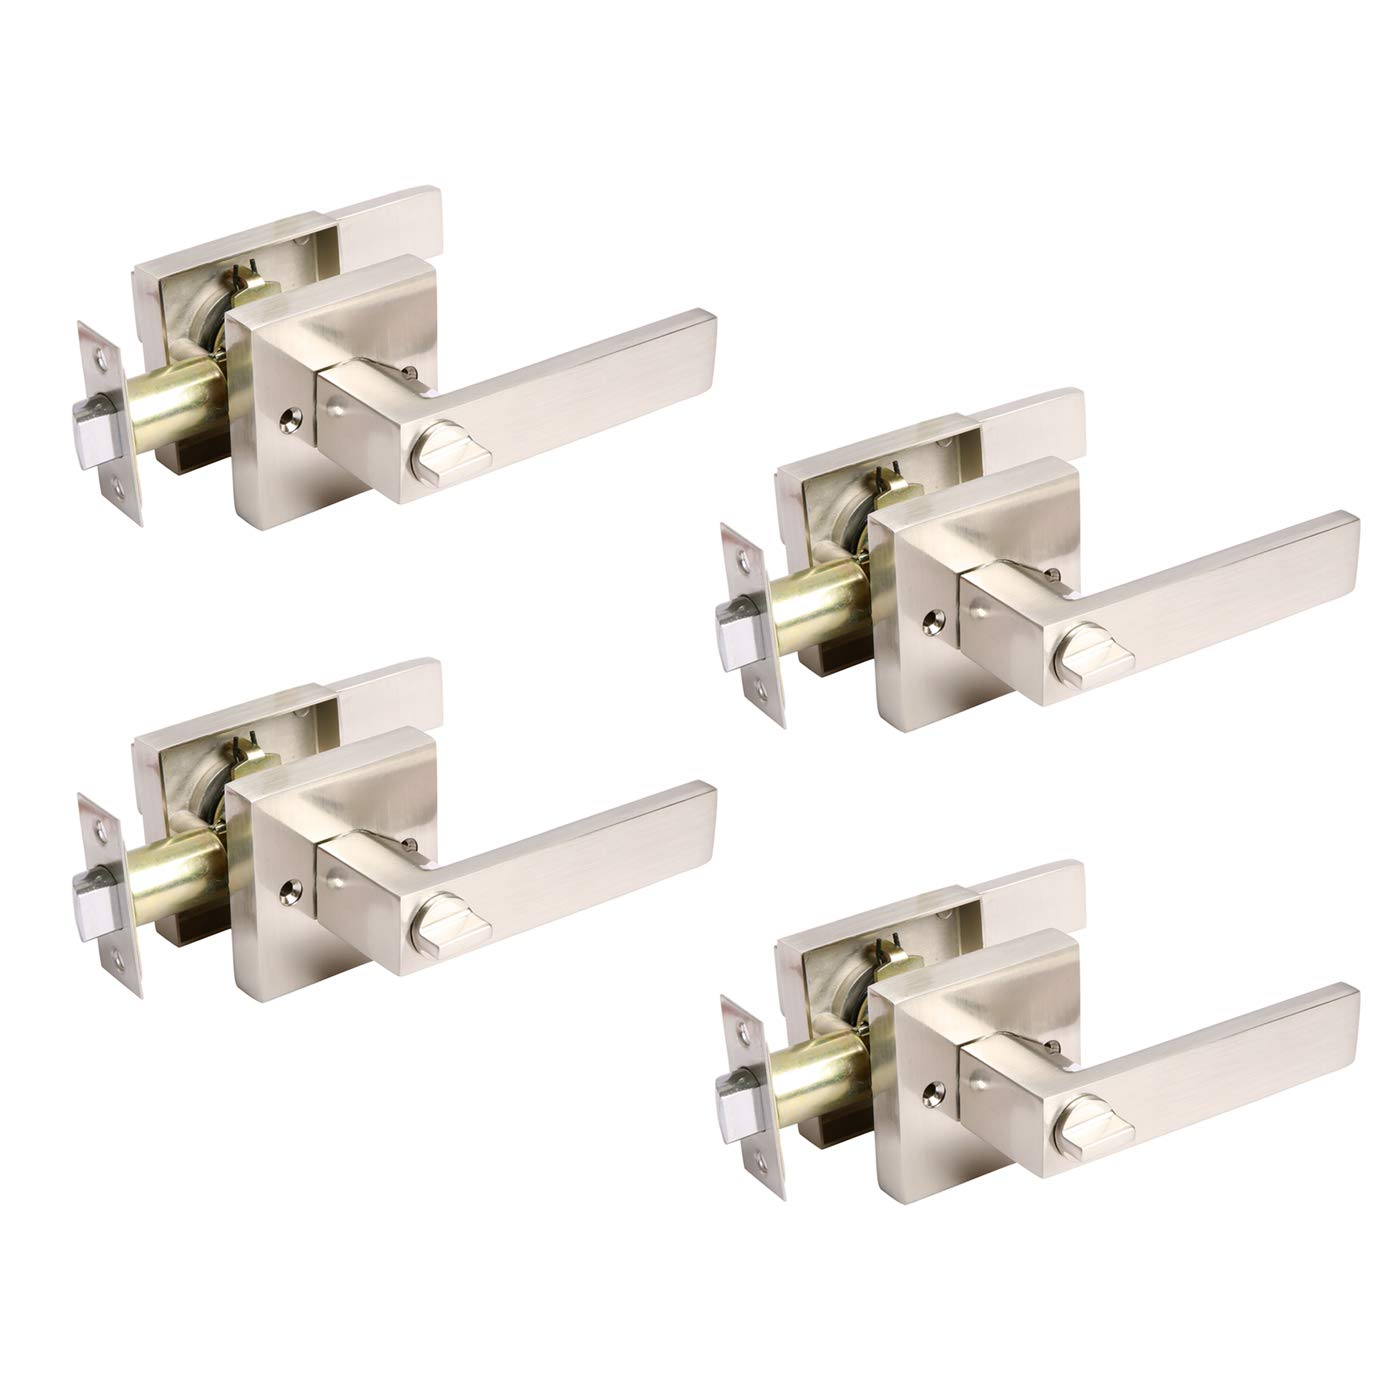 Interior Door Levers Brushed Nickel Finish Passage Function for Closets//Hallway//Laundry Rooms Satin Nickel Heavy Duty Door Handle Locks for Homes//Offices Keyless Door Handles Without Keys 1Pack